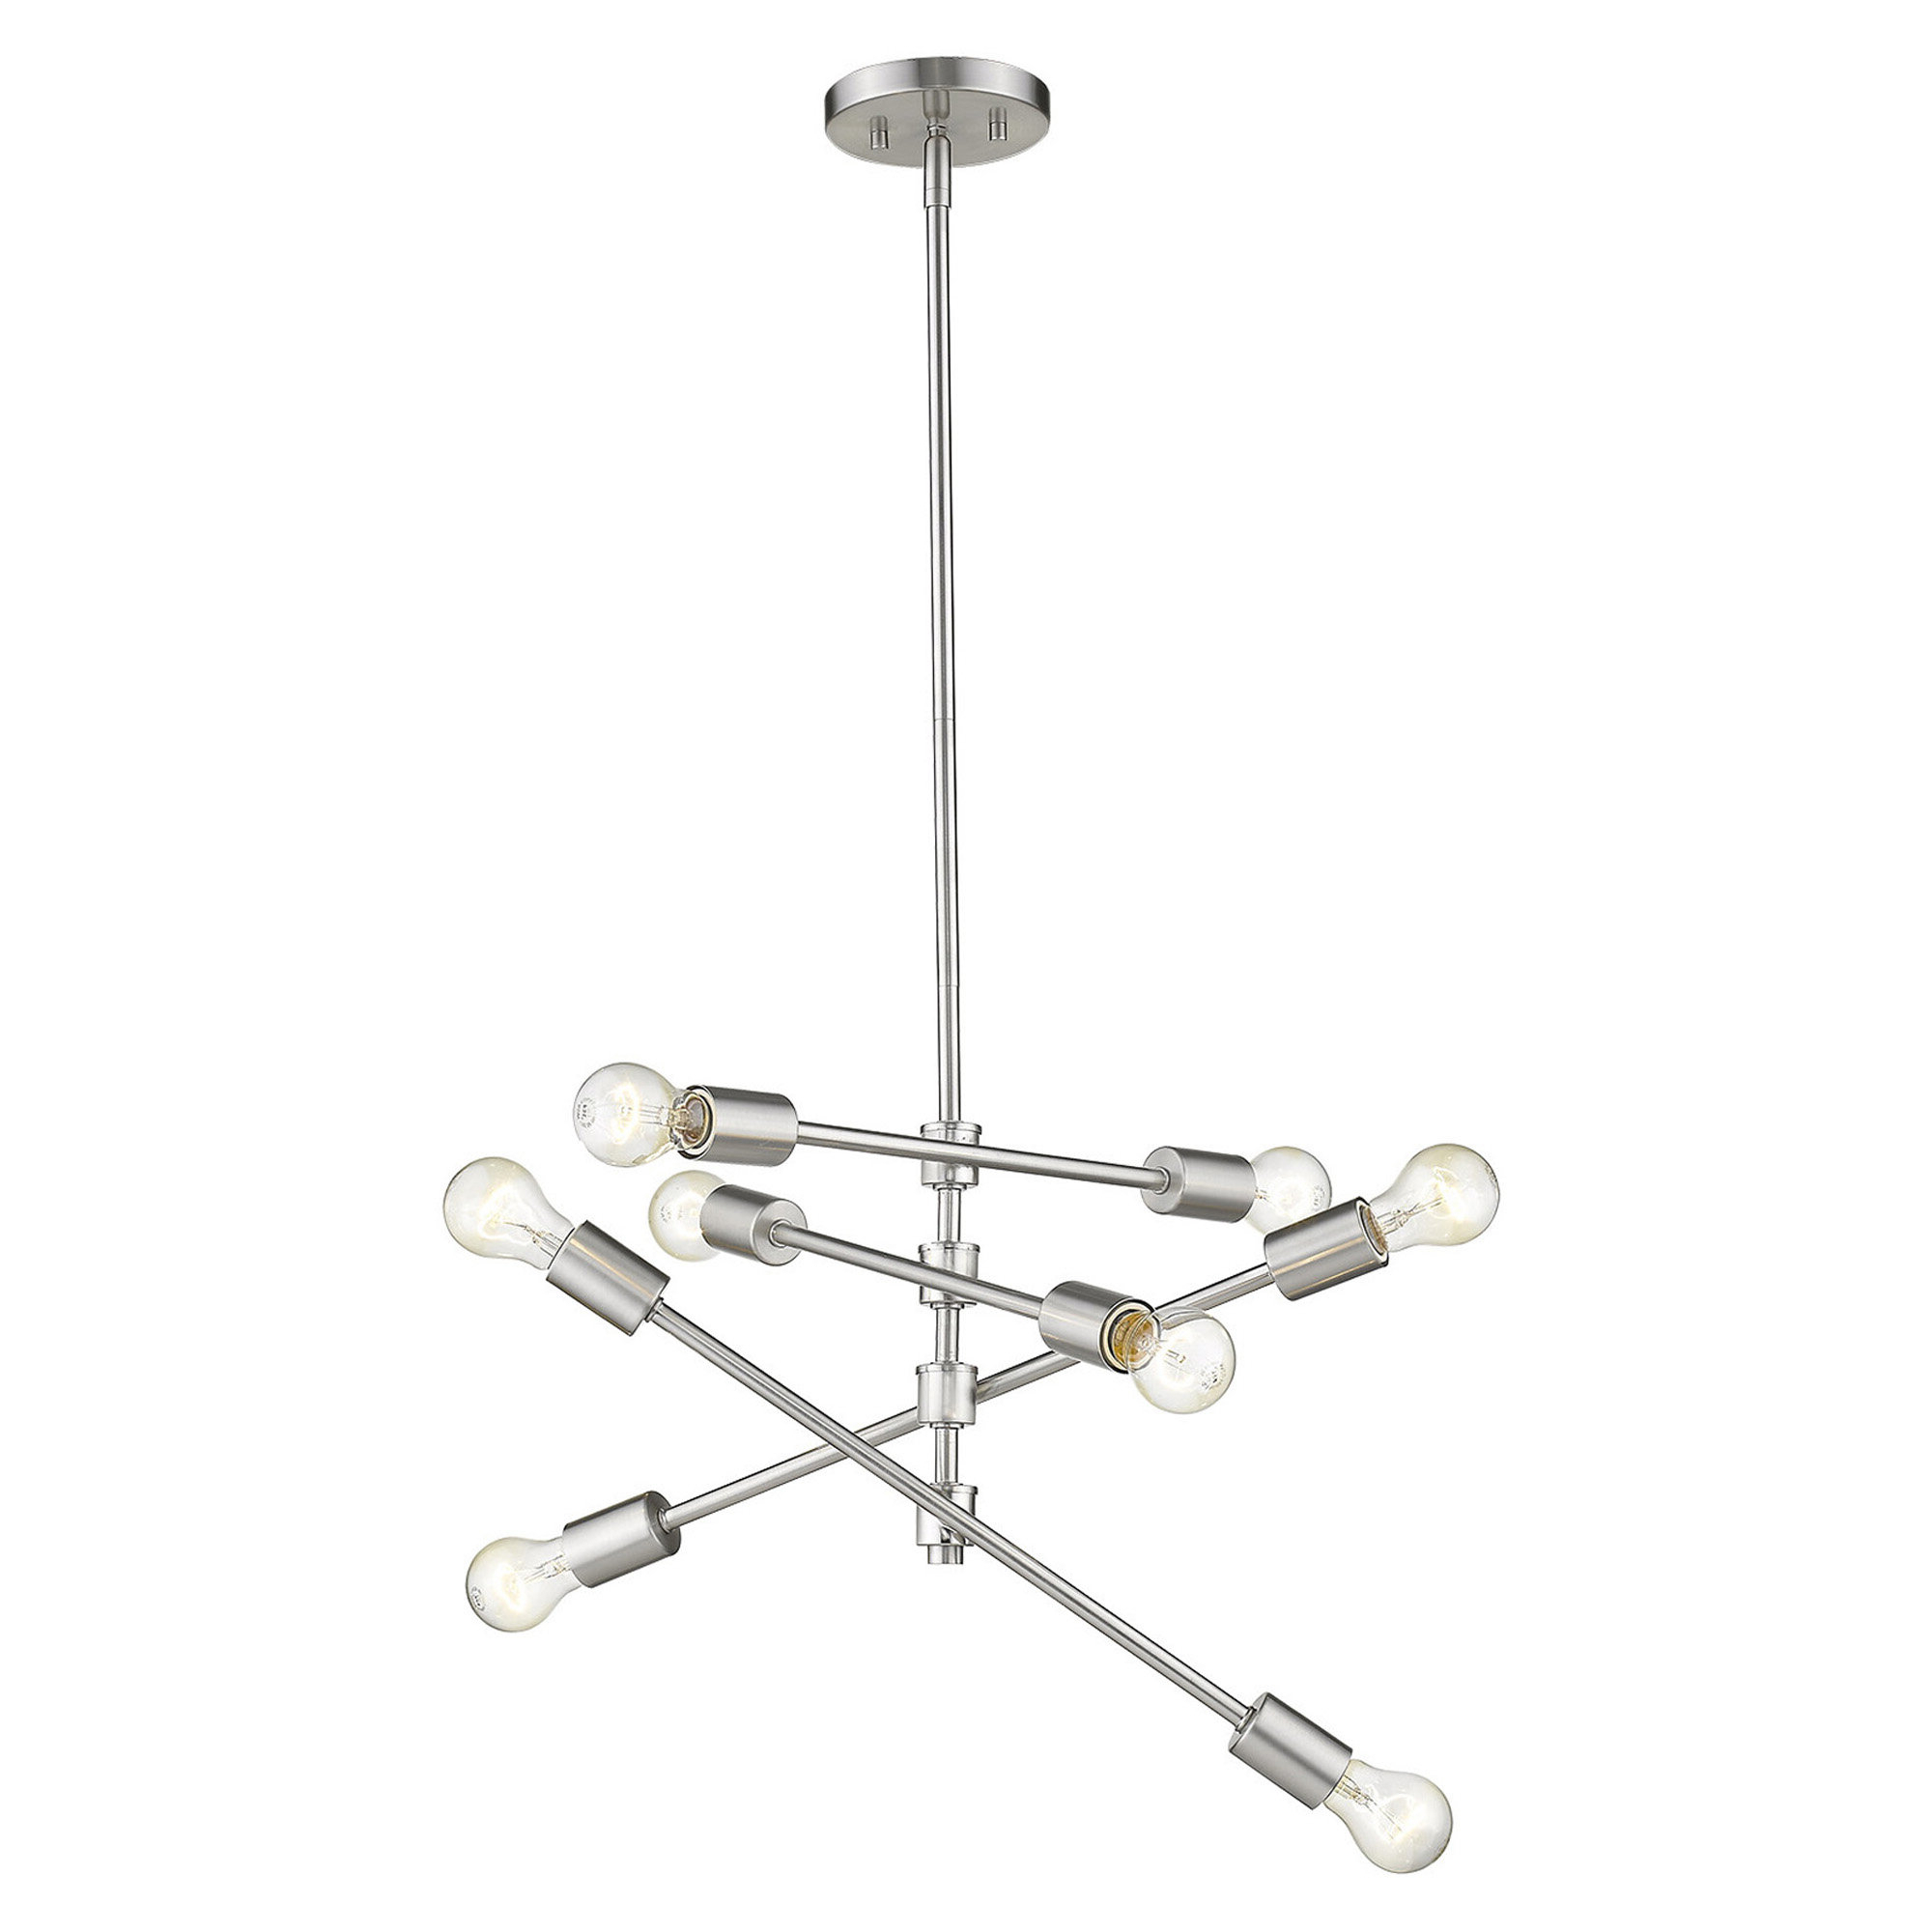 Most Recent Asher 12 Light Sputnik Chandeliers Regarding Bella Vista 8 Light Sputnik Chandelier (View 16 of 20)